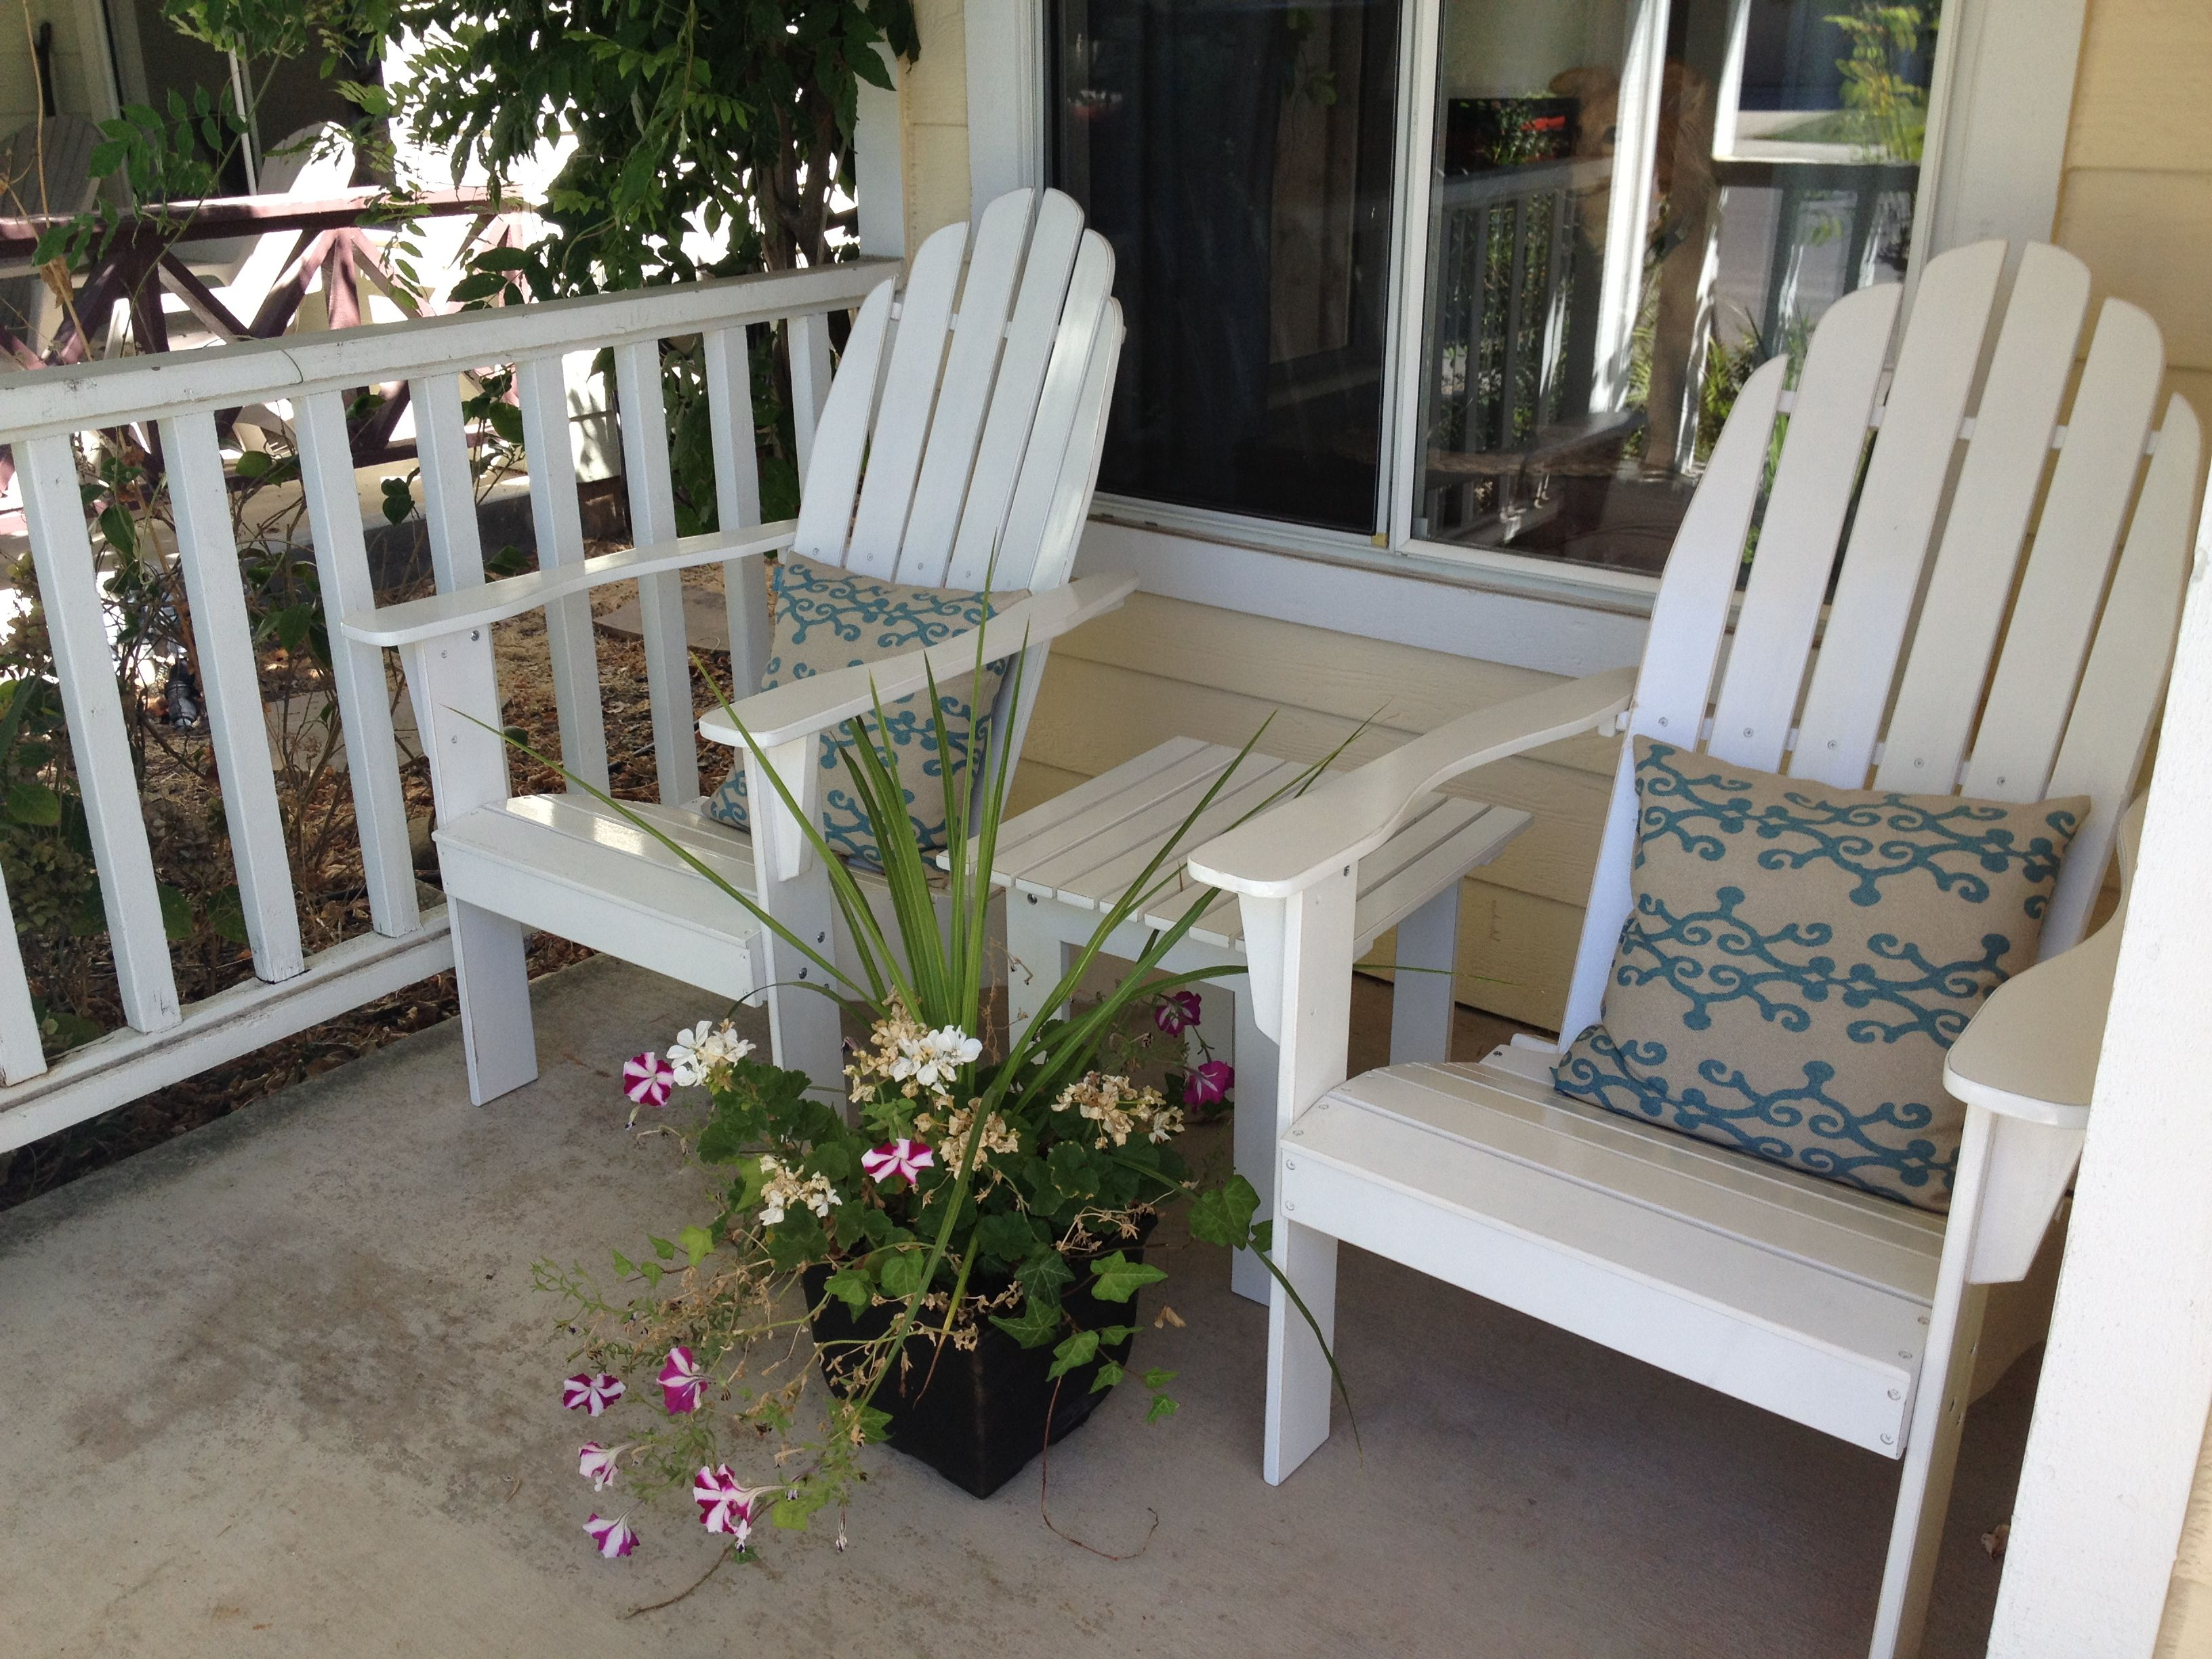 Front Porch Furniture   Porch Chairs. Front Porch Furniture   Porch Chairs   Front Porch Deco